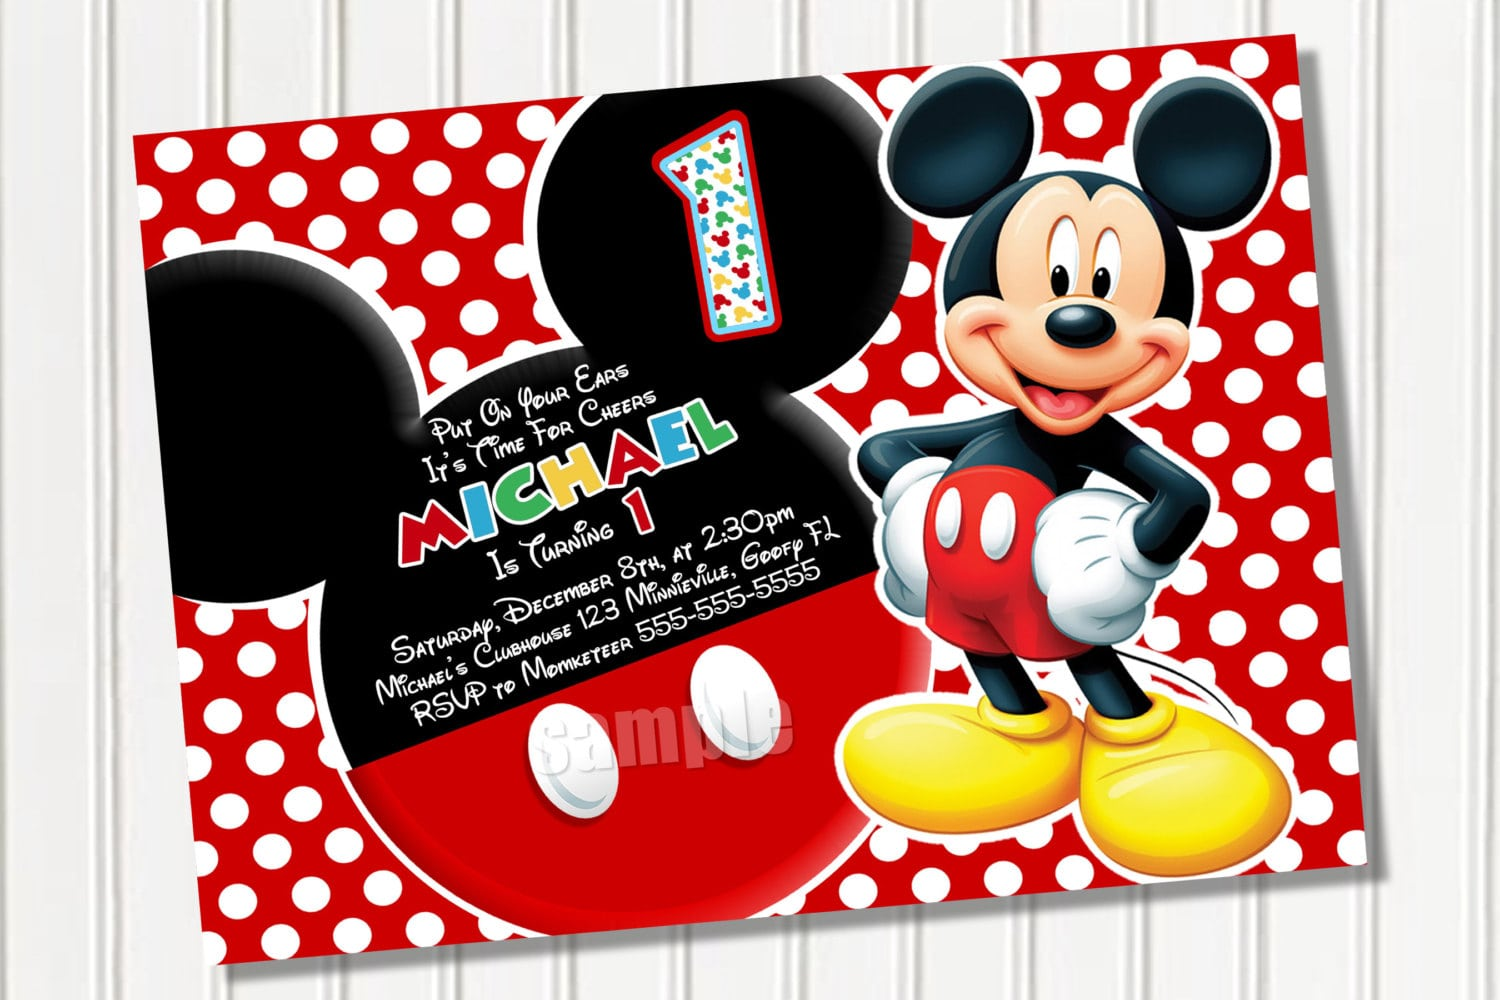 Awesome Mickey Mouse Party Invitation Template With Red Polka Dot